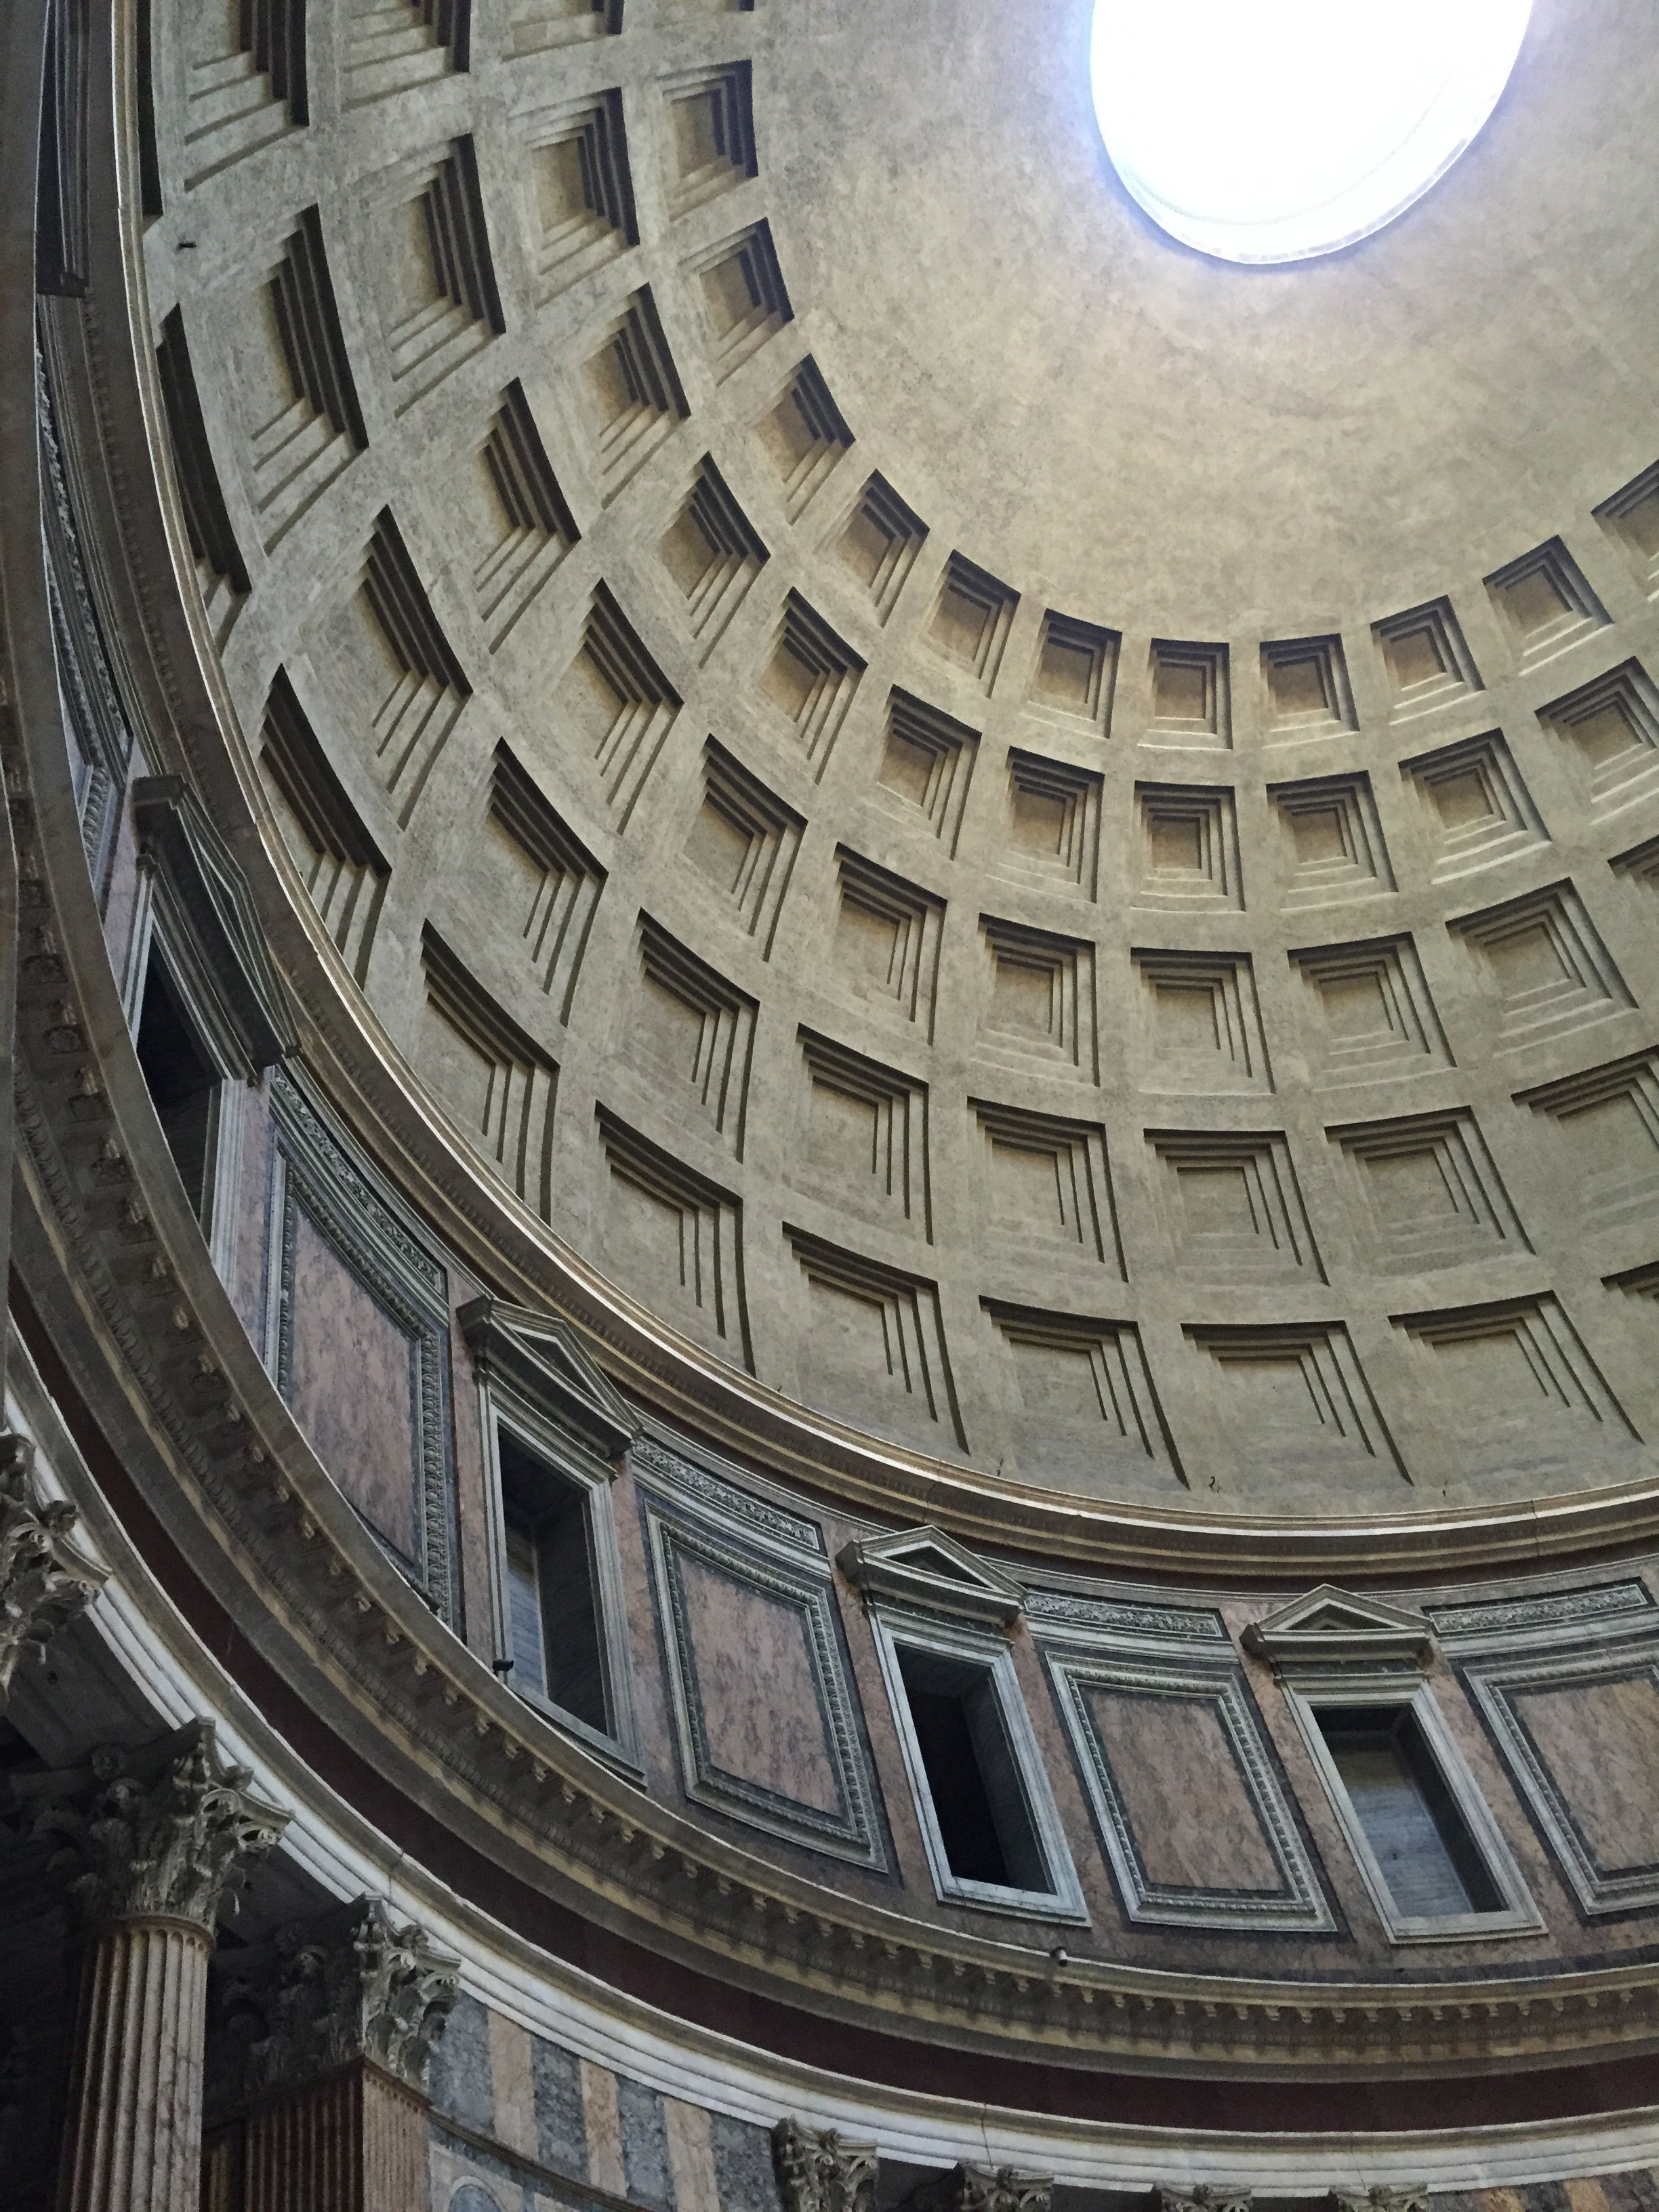 Inside the Pantheon in Rome looking up at the massive dome.